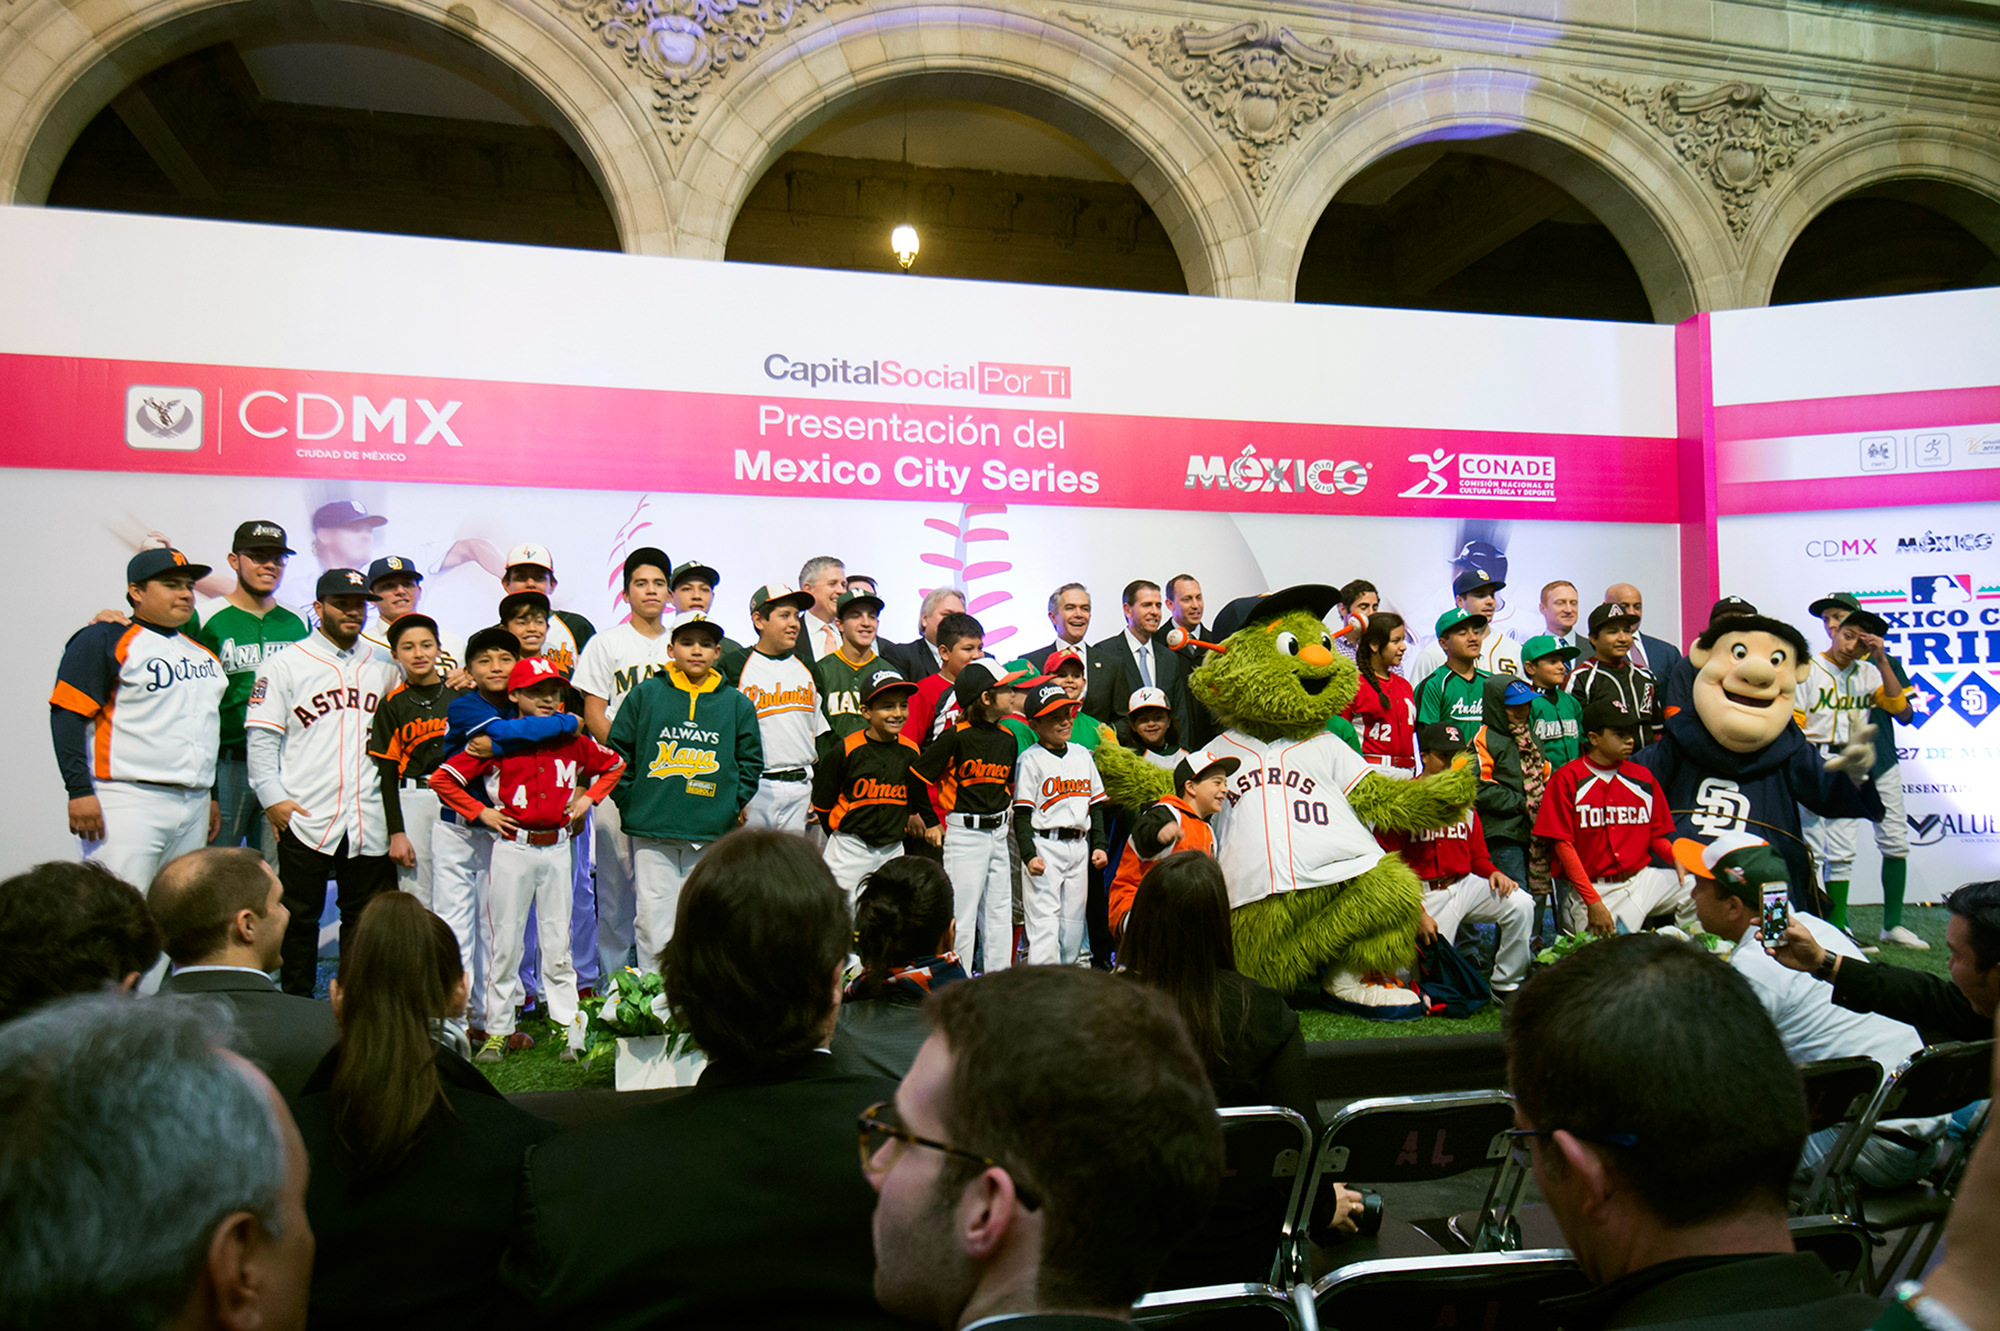 Youth baseball players pose with mascots on stage during the announcement of the Spring Training Mexico City Series between the Houston Astros and the San Diego Padres on Wednesday, January 13, 2016 at City Hall in Mexico City, Mexico. Photo by Gabriel Roux/MLB Photos.